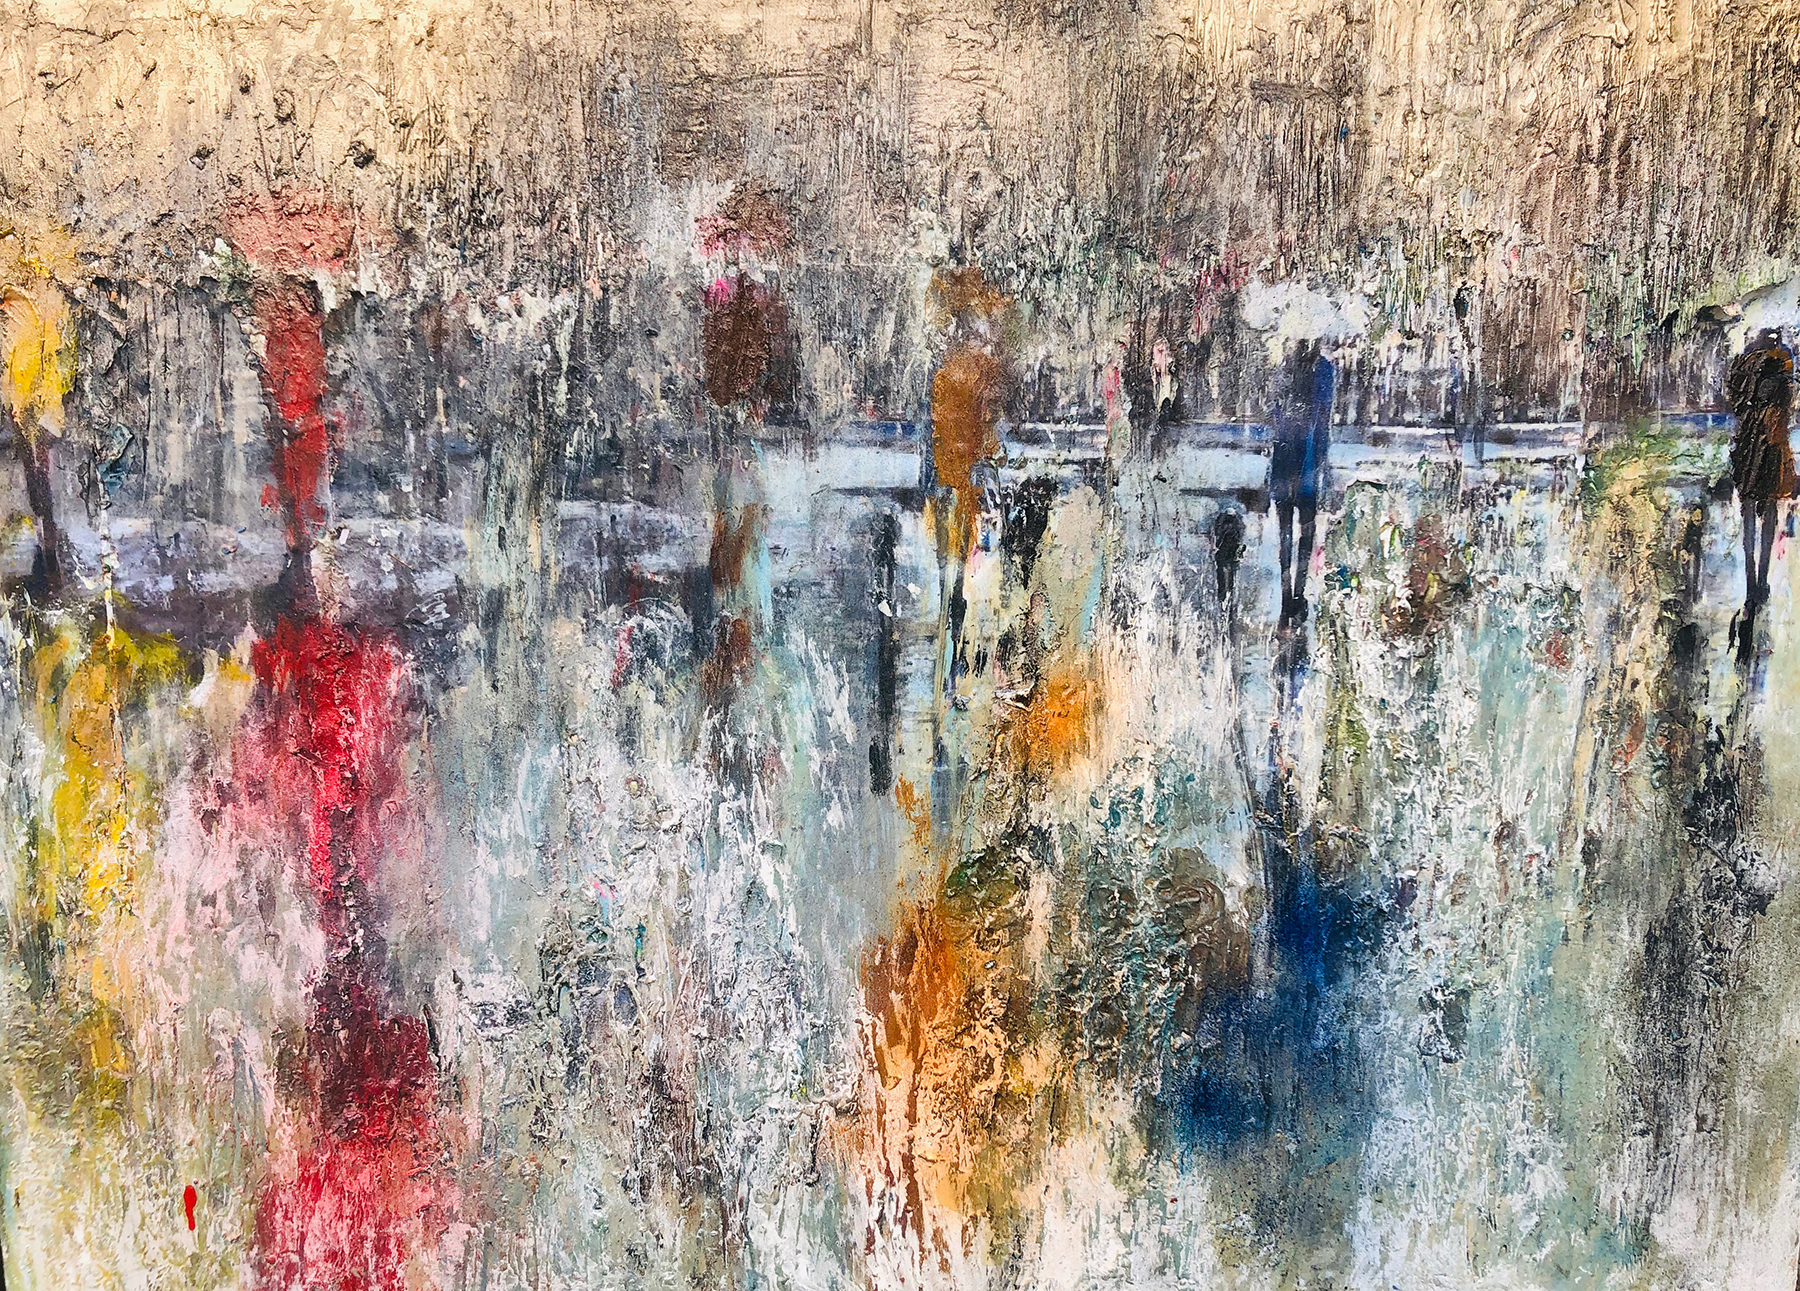 """</br><p align=""""left""""><strong><em>Stroll Through Central Park</em></strong></br>30 x 40""""</br>Mixed media</br>$575</br><strong>AVAILABLE AT ART OF RECOVERY AUCTION NOV. 6-13</strong></p><br>"""